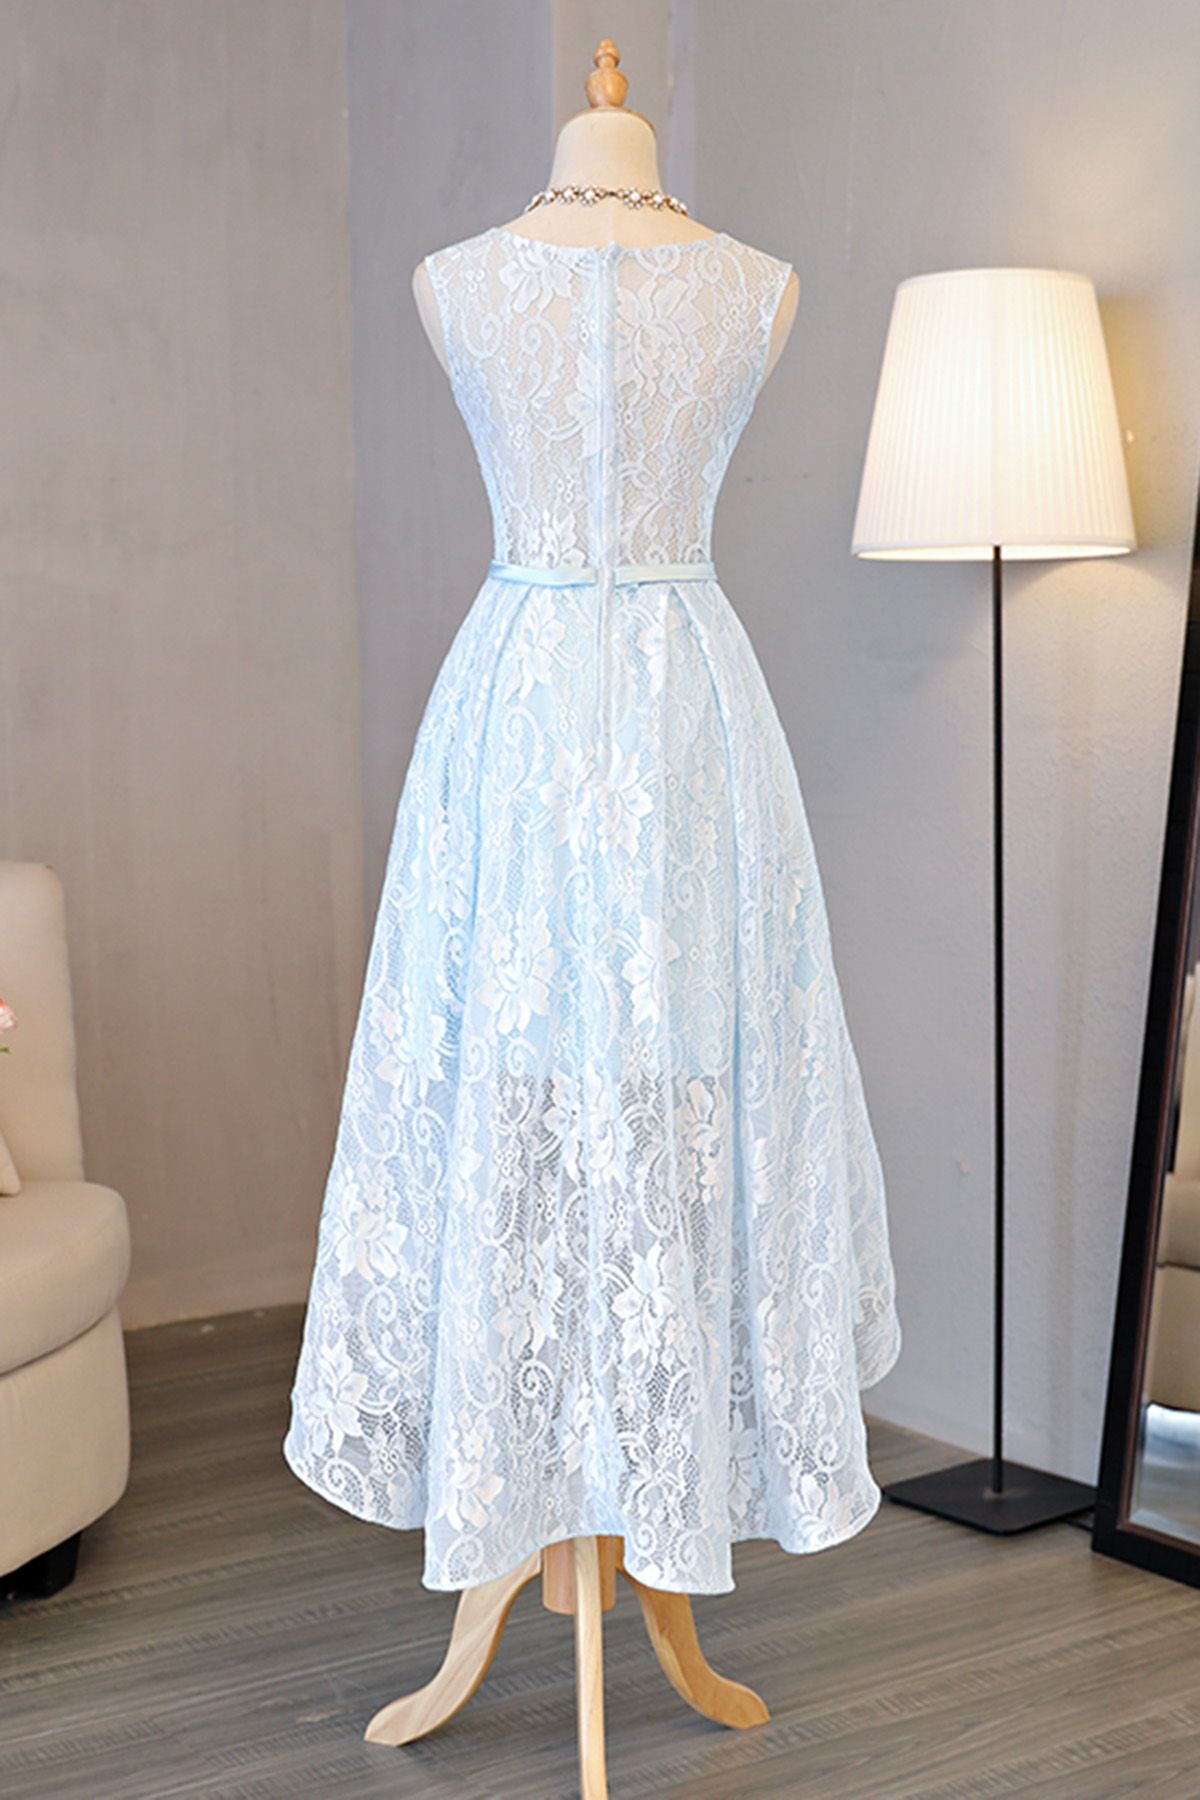 Sexy lace evening dresssleeveless light blue prom dresselegant